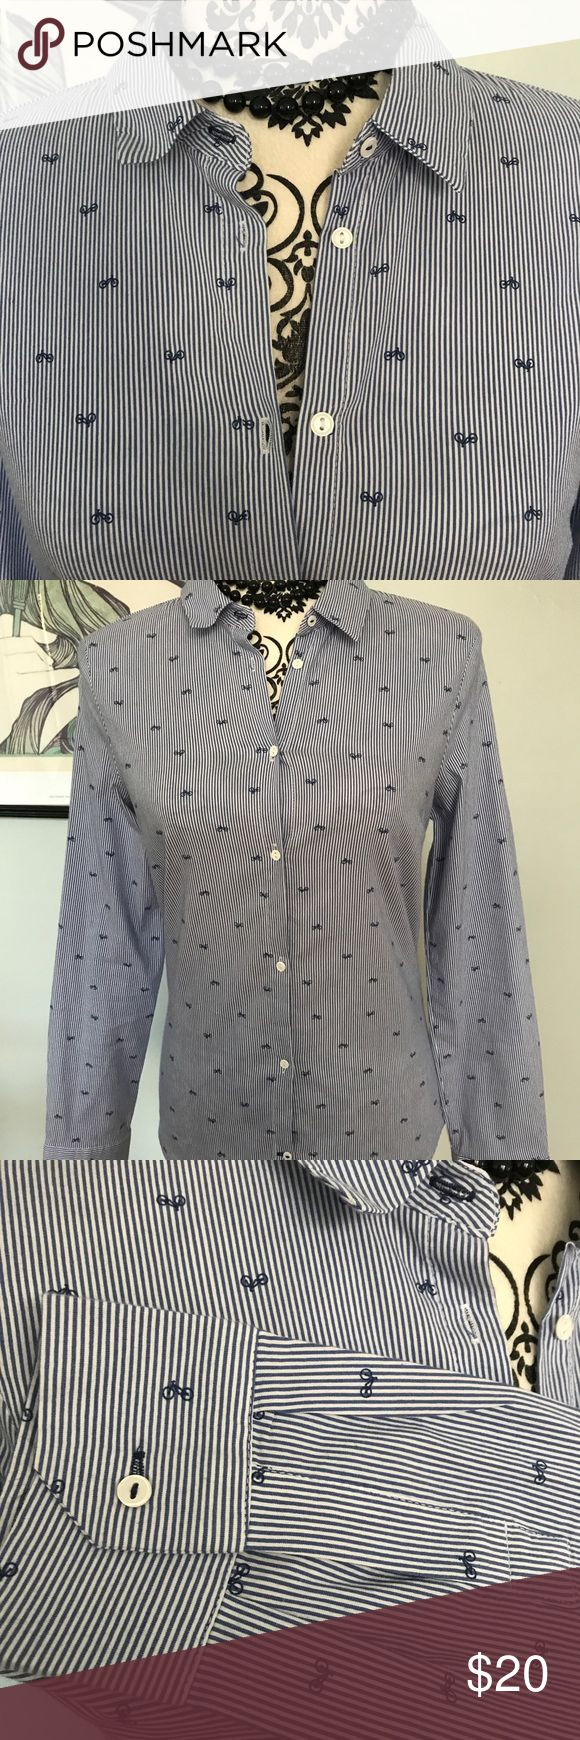 "Zara Oxford-style shirt with bicycle print Excellent used condition! This is a darling Zara Oxford-style button-up shirt with blue and white stripes, plus an adorable print of small (navy blue) bicycles. Delicate white buttons at front and sleeves. Sad reposh, because this was too tight in the bust. Underarm to underarm is approx 15.5"". The dress form's bust is approx 33.5"", and I wouldn't go any tighter than that (minimal to no stretch). Back neck to hem approx 26.5"". Perfect for work or a…"